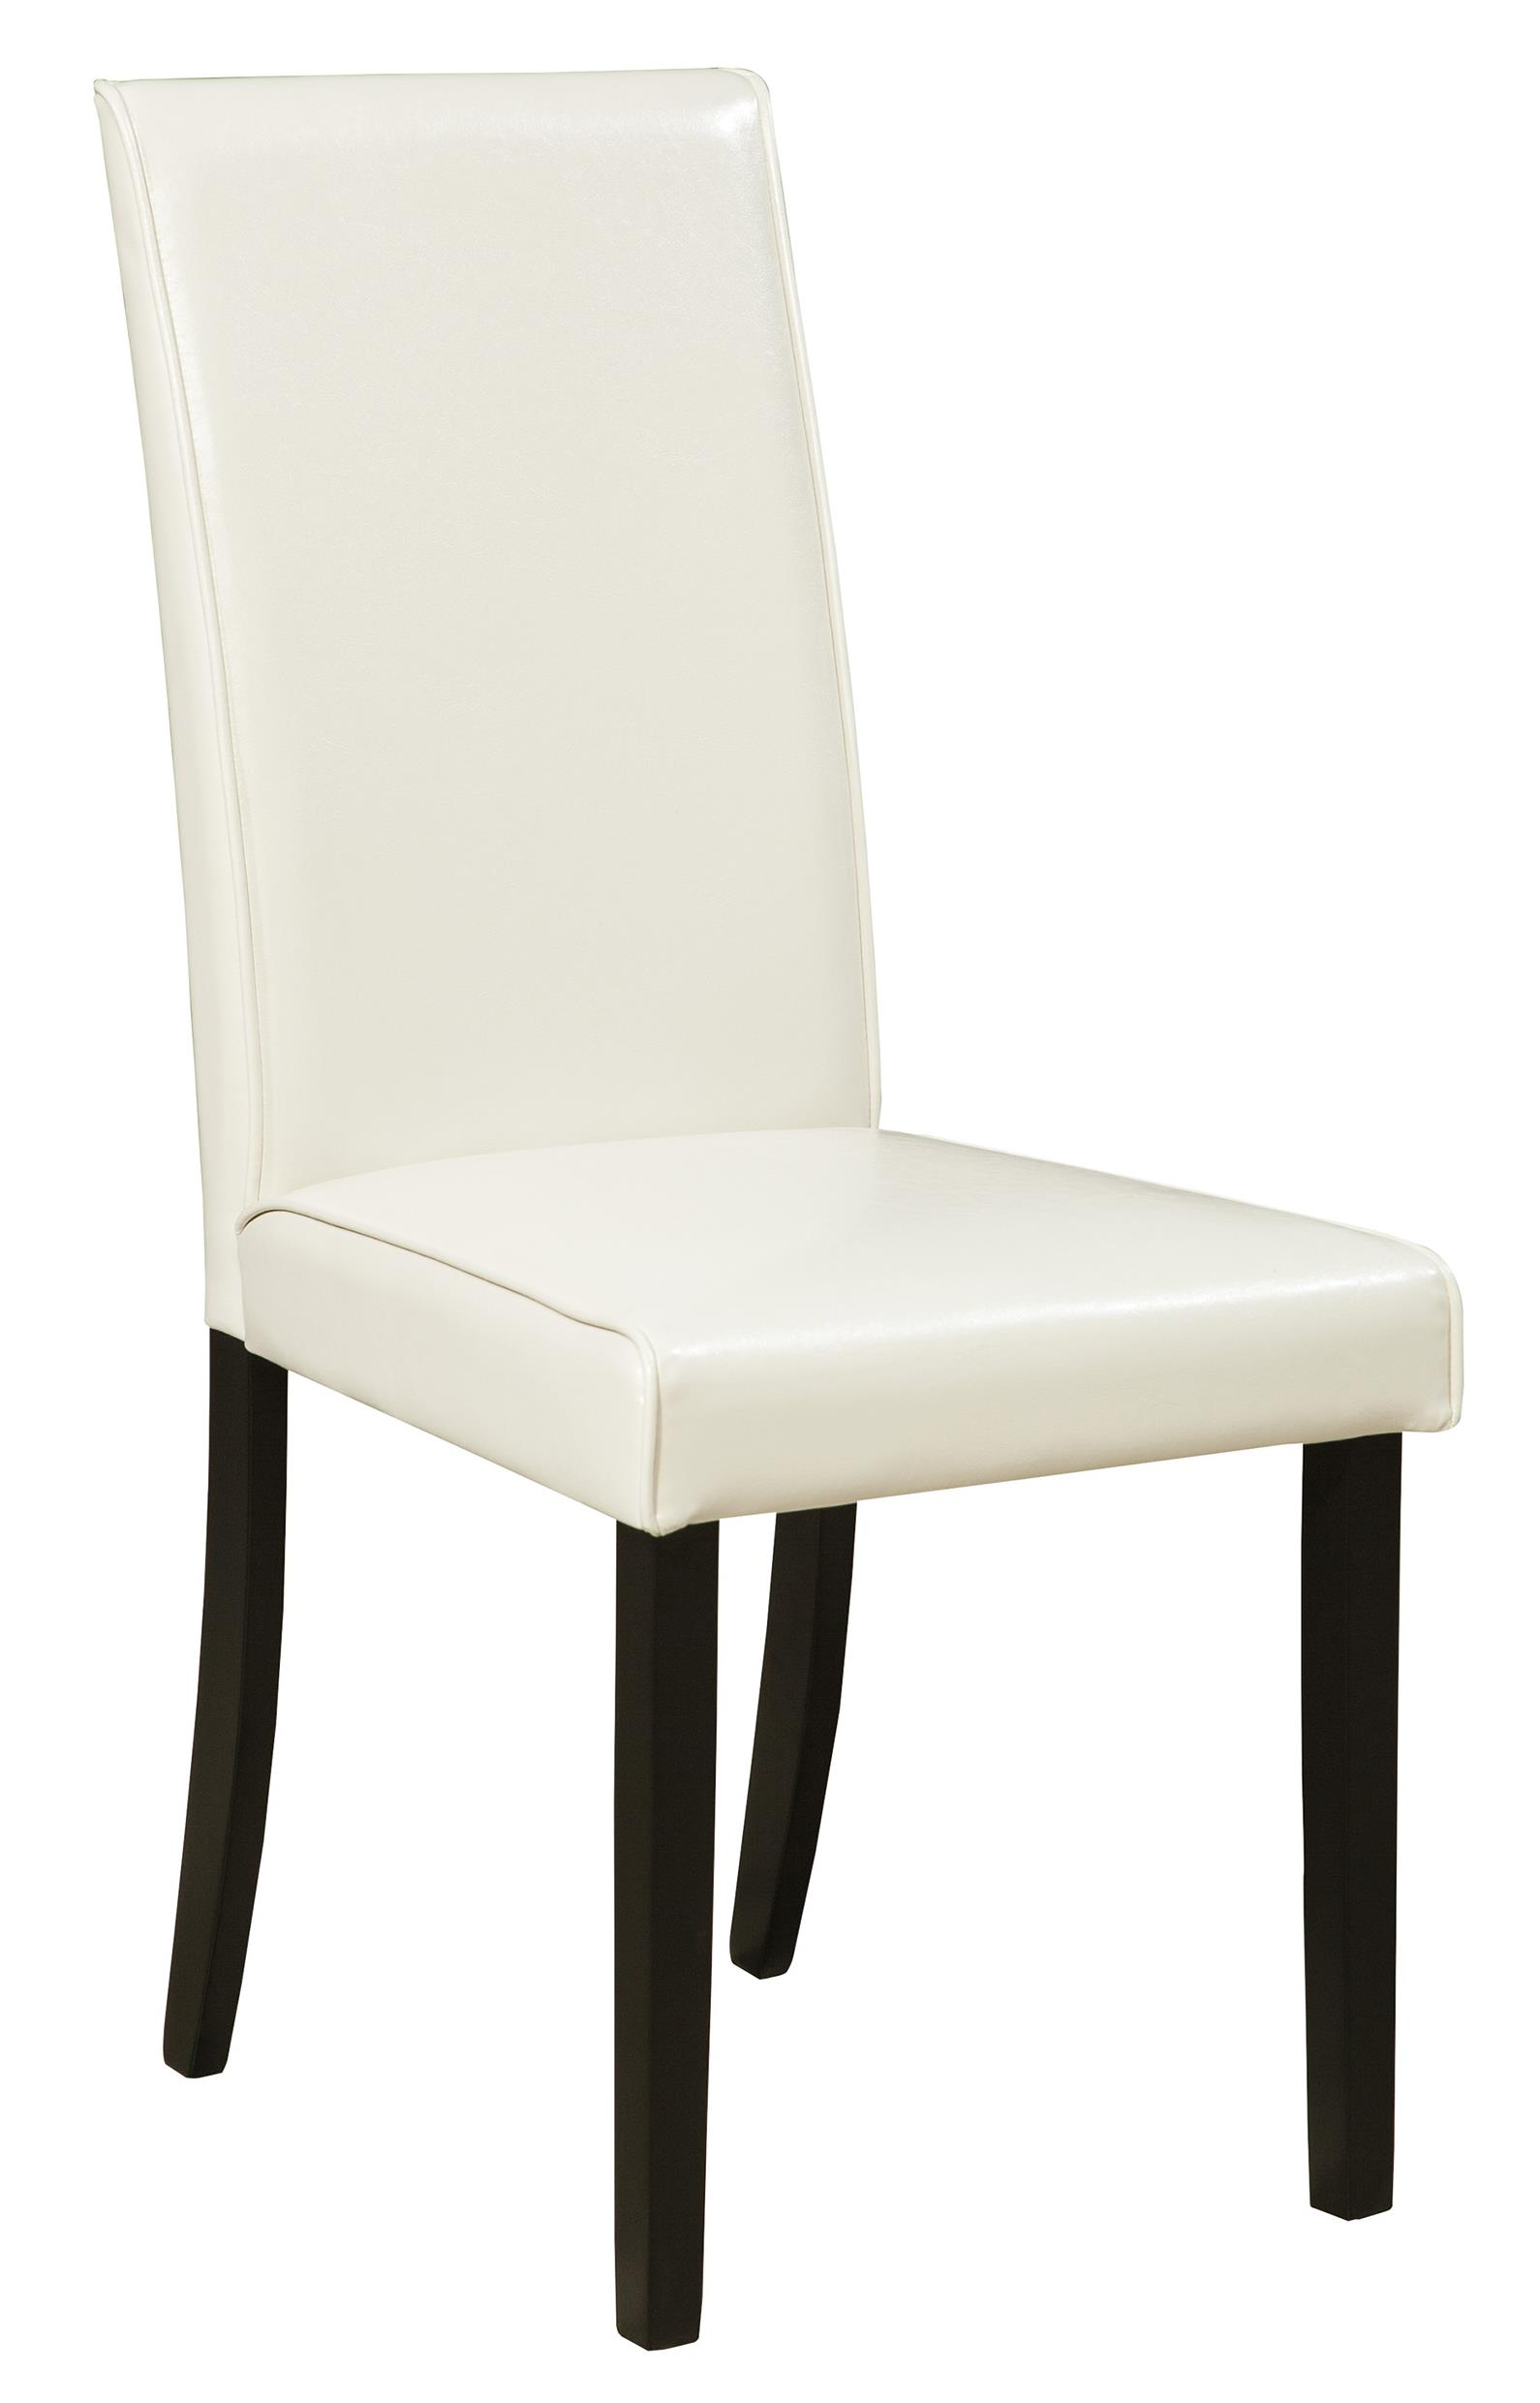 Signature Design by Ashley Kimonte Dining Upholstered Side Chair - Item Number: D250-01